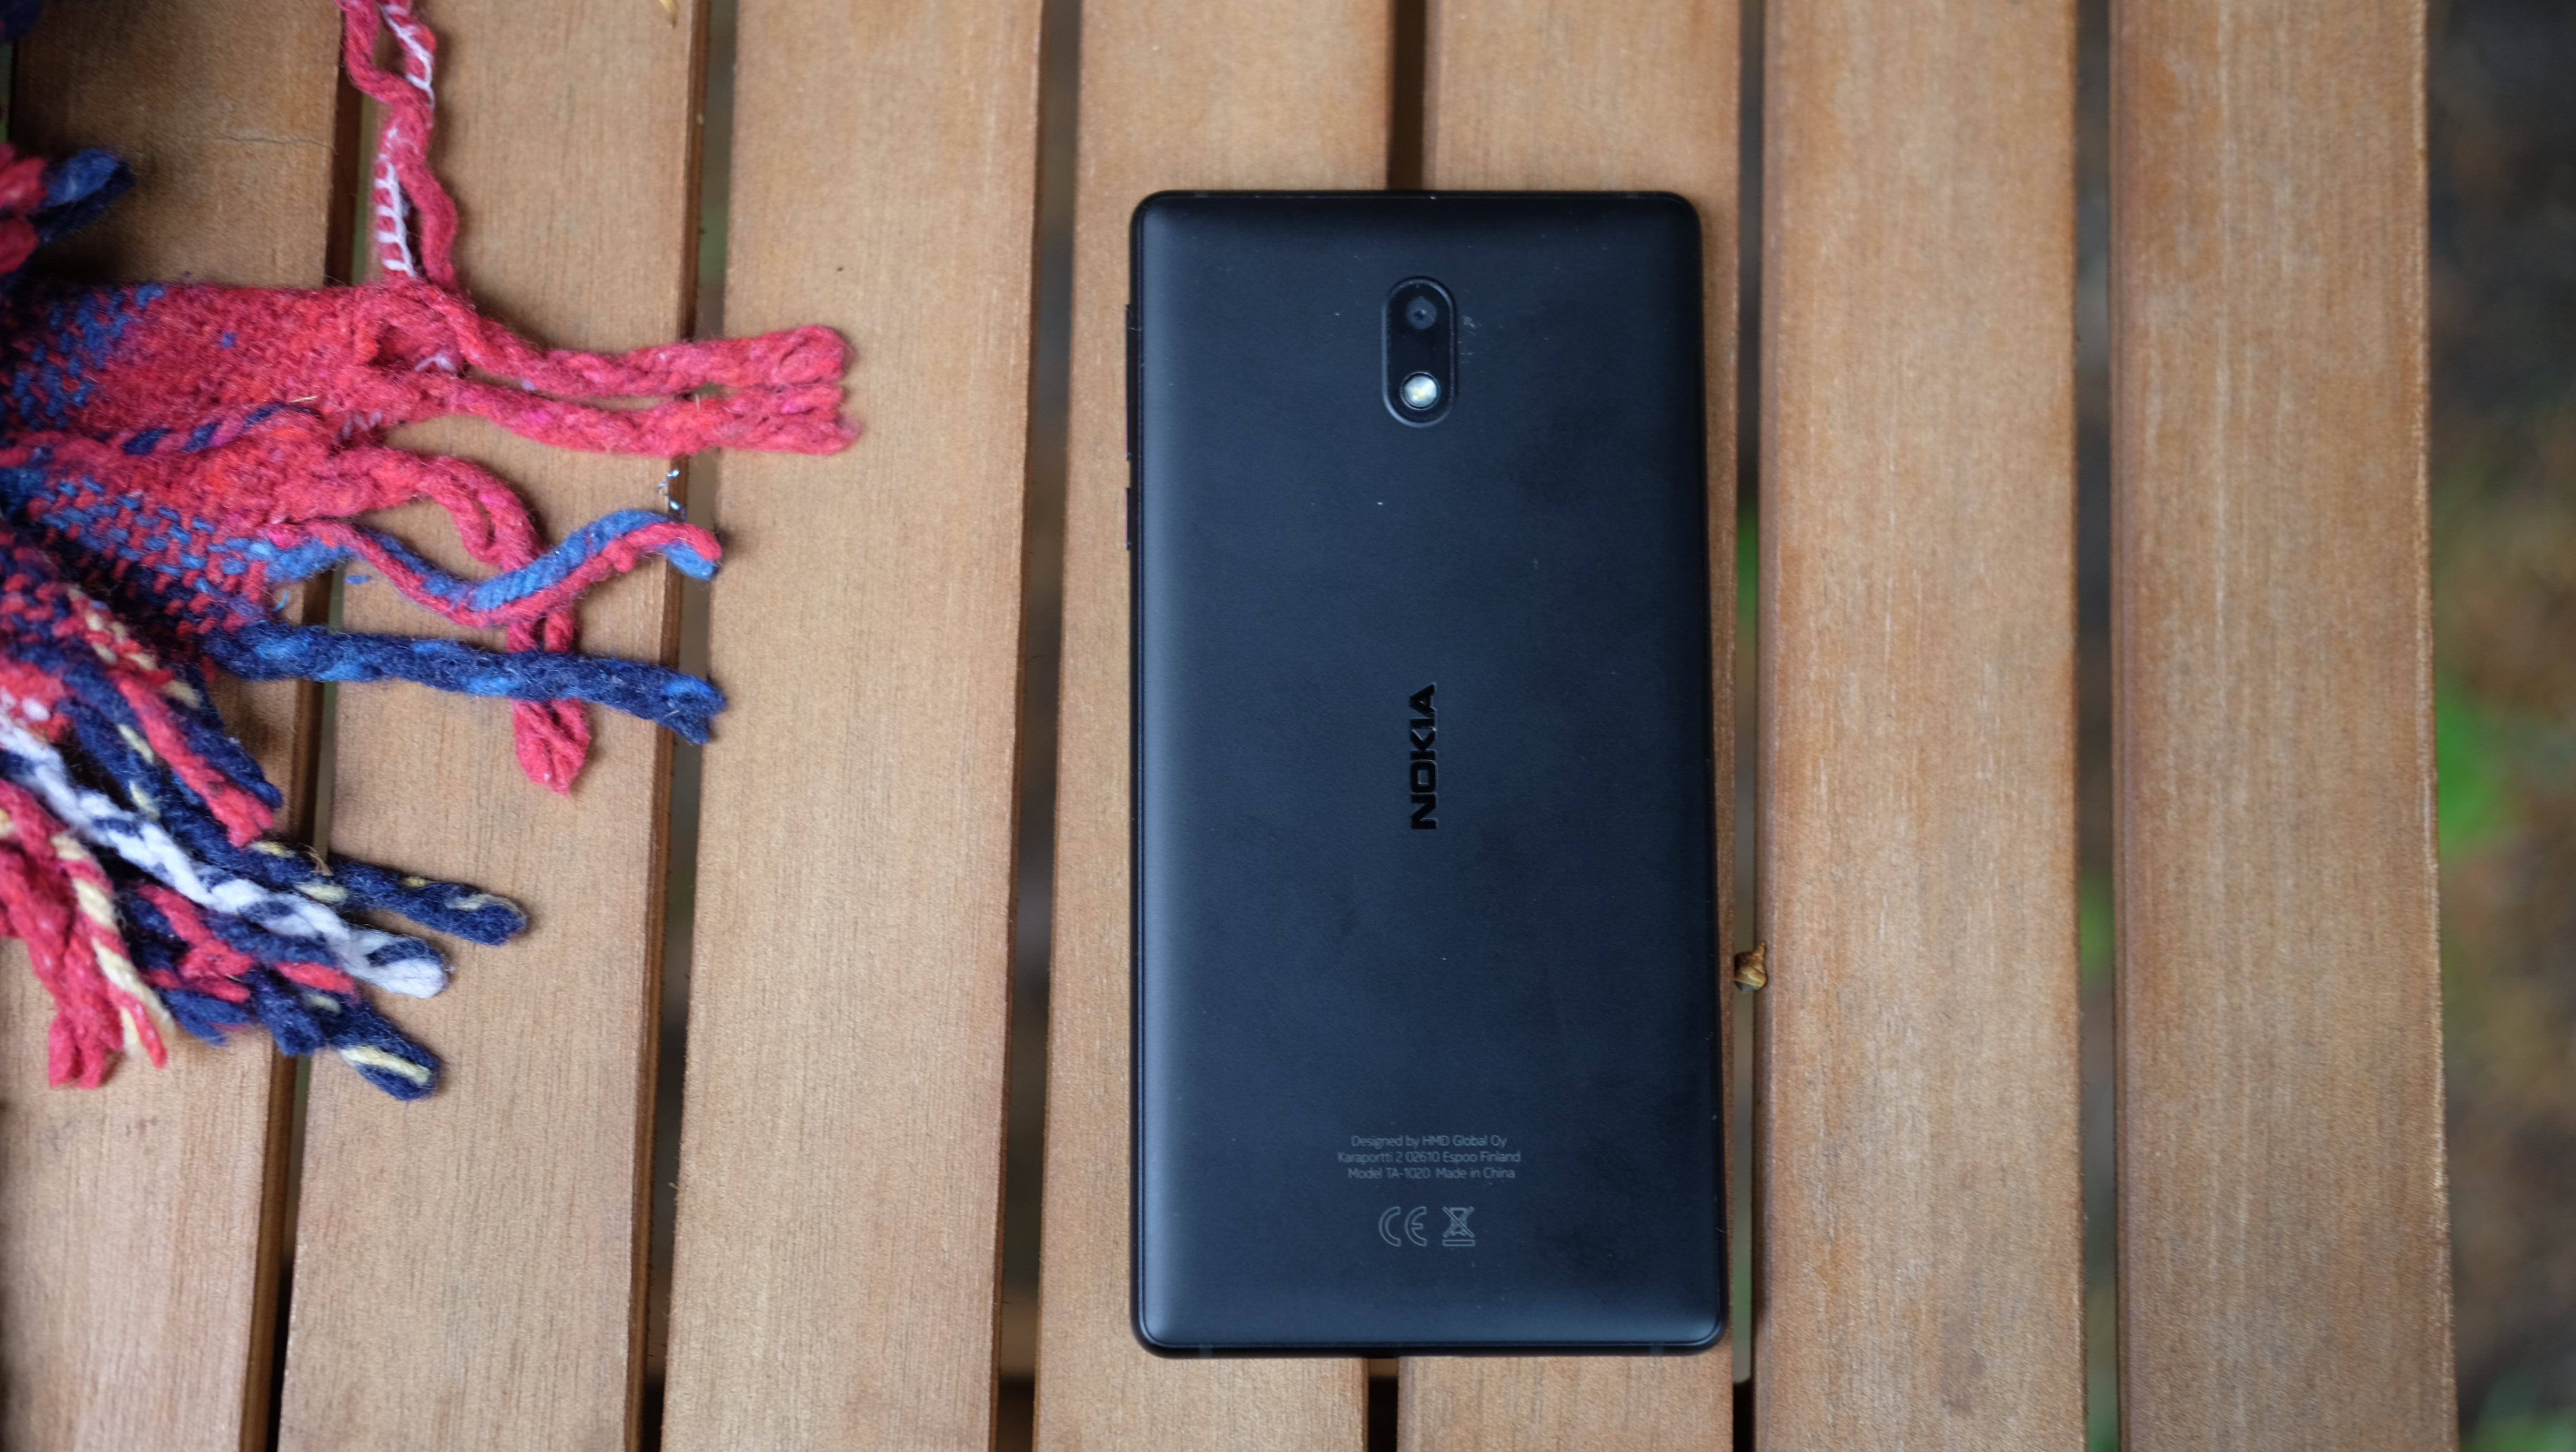 Nokia 3 review trusted reviews the nokia 3 is small and can be comfortably used in one hand this is becoming increasingly rare and its quite nice to go back to a phone with a 5 inch gumiabroncs Gallery